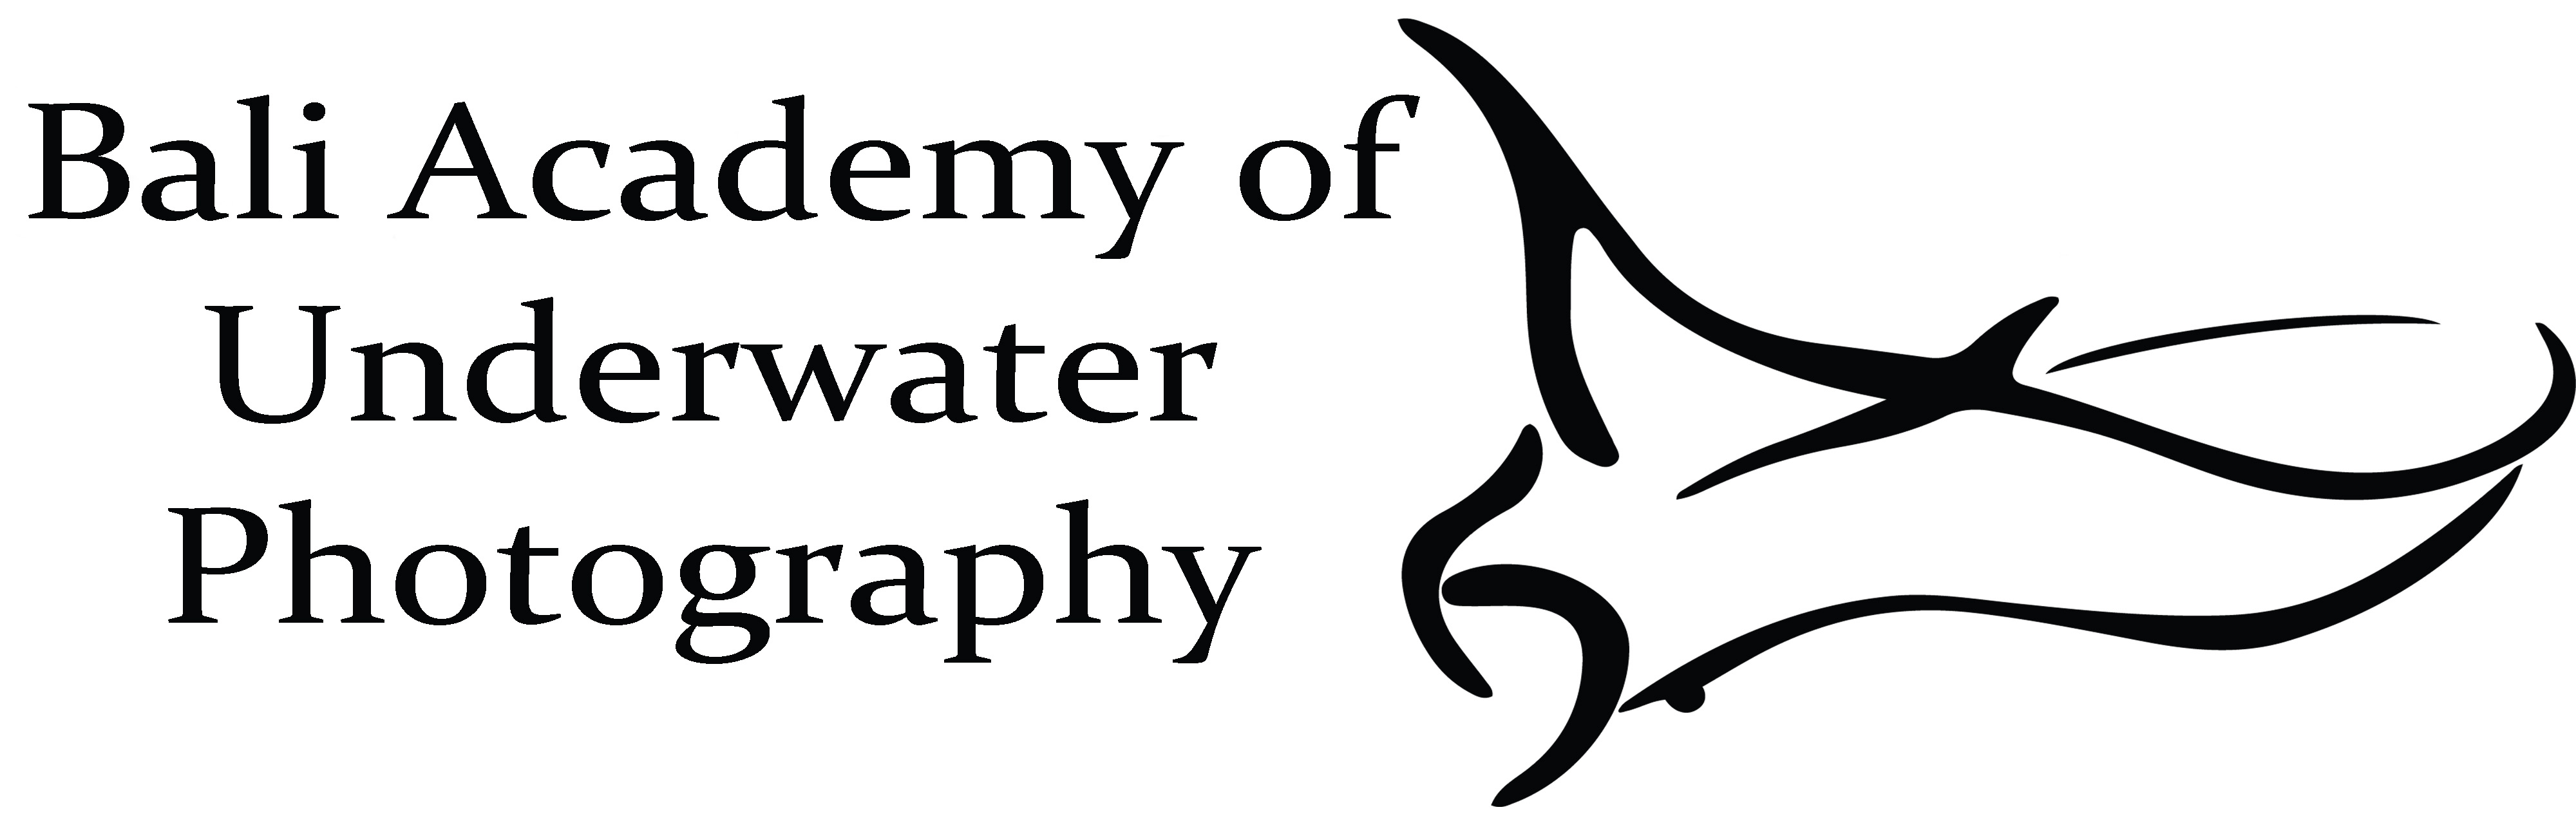 Bali Academy of Underwater Photography Logo